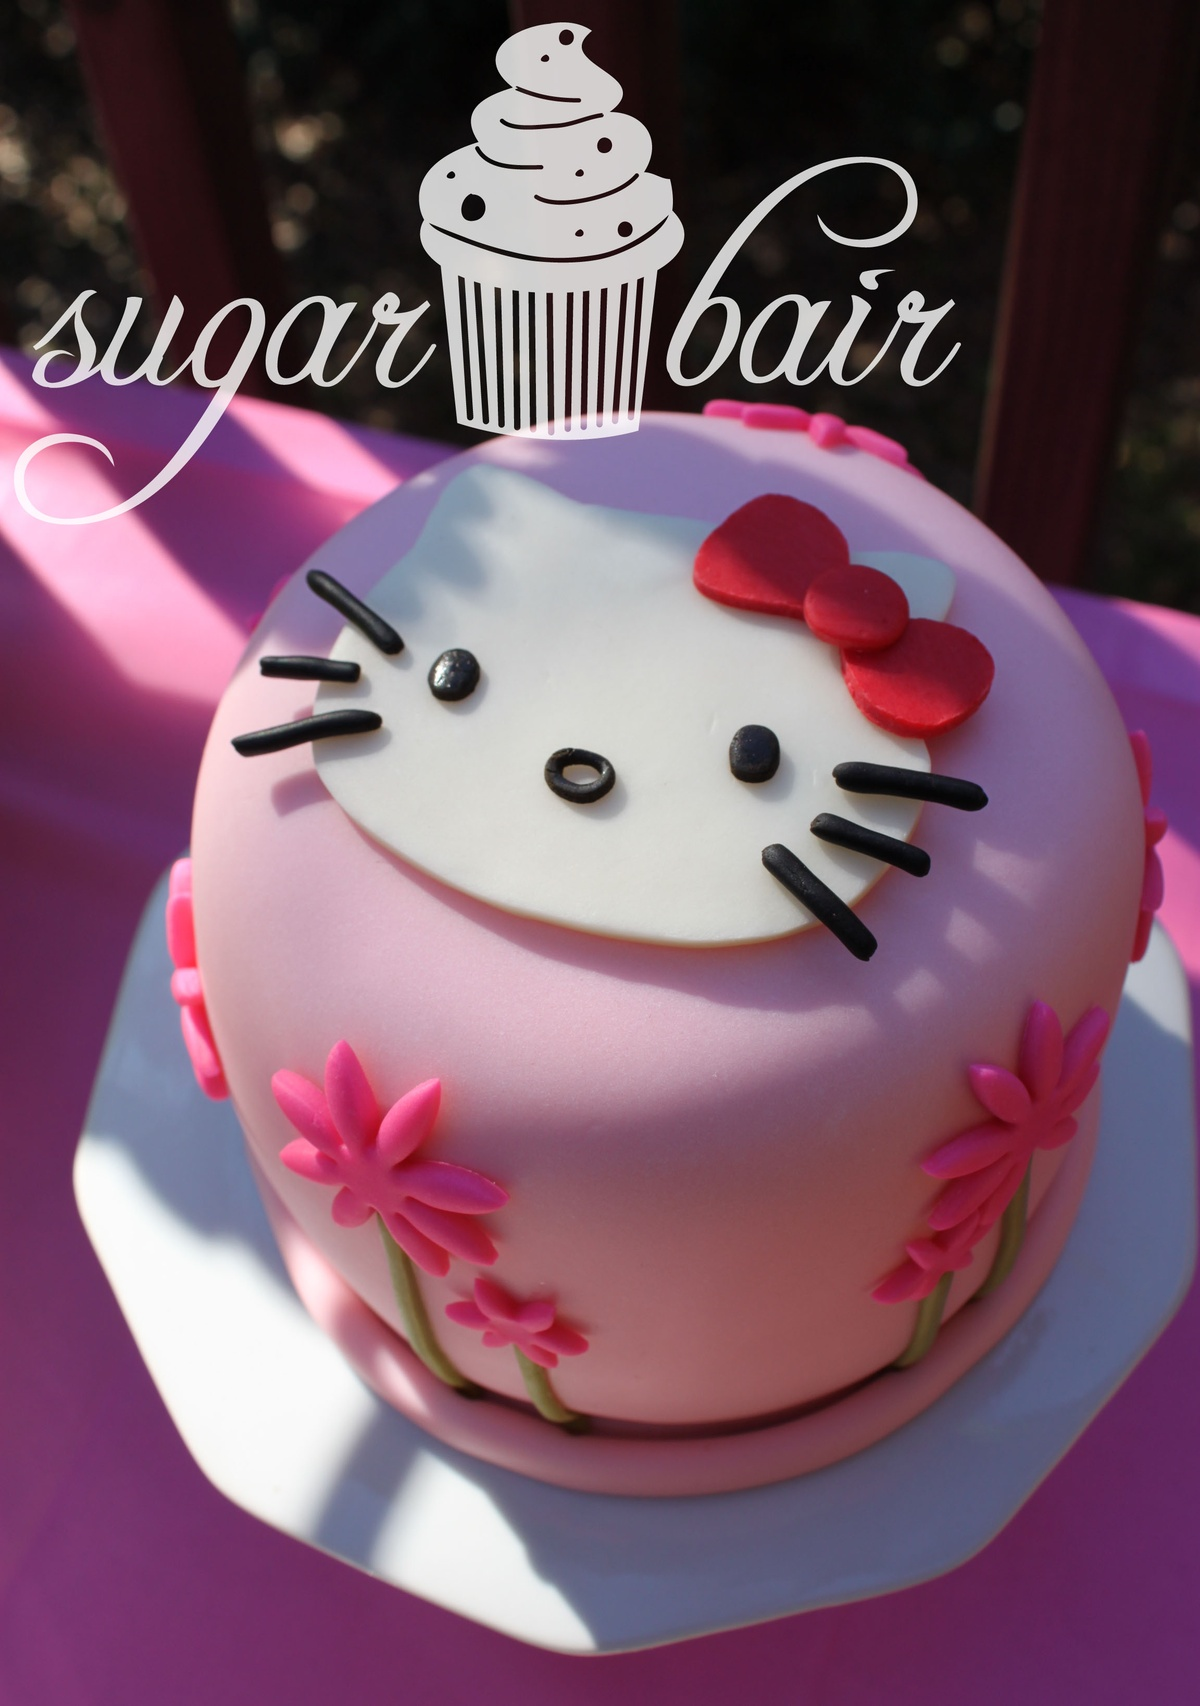 Google Images Hello Kitty Cake : Hello kitty cake, Google translate and Cake tutorial on ...